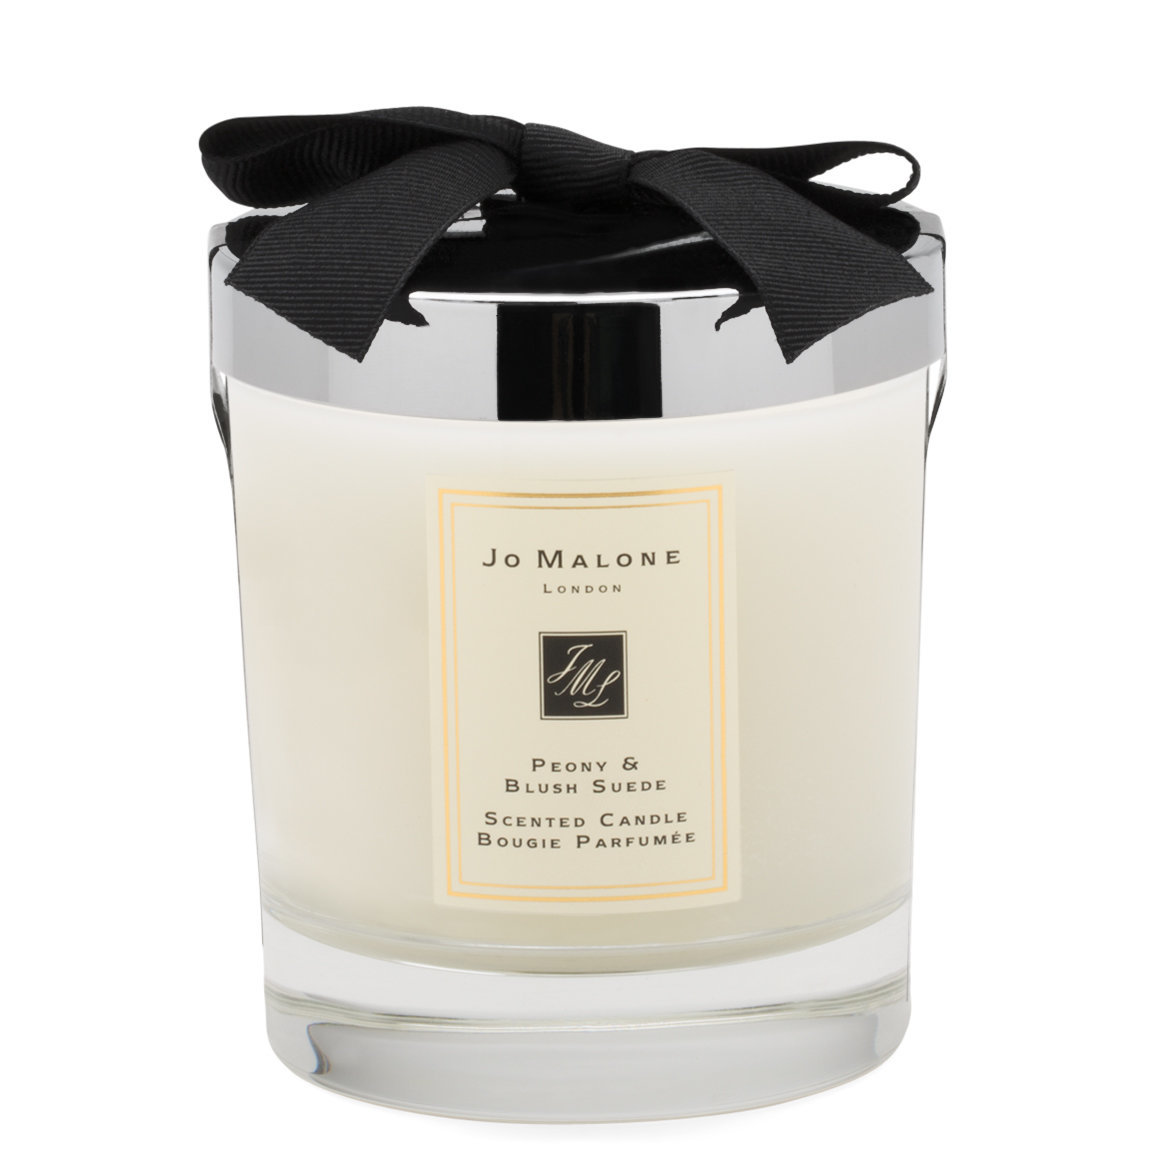 Jo Malone London Peony & Blush Suede Scented Candle product swatch.